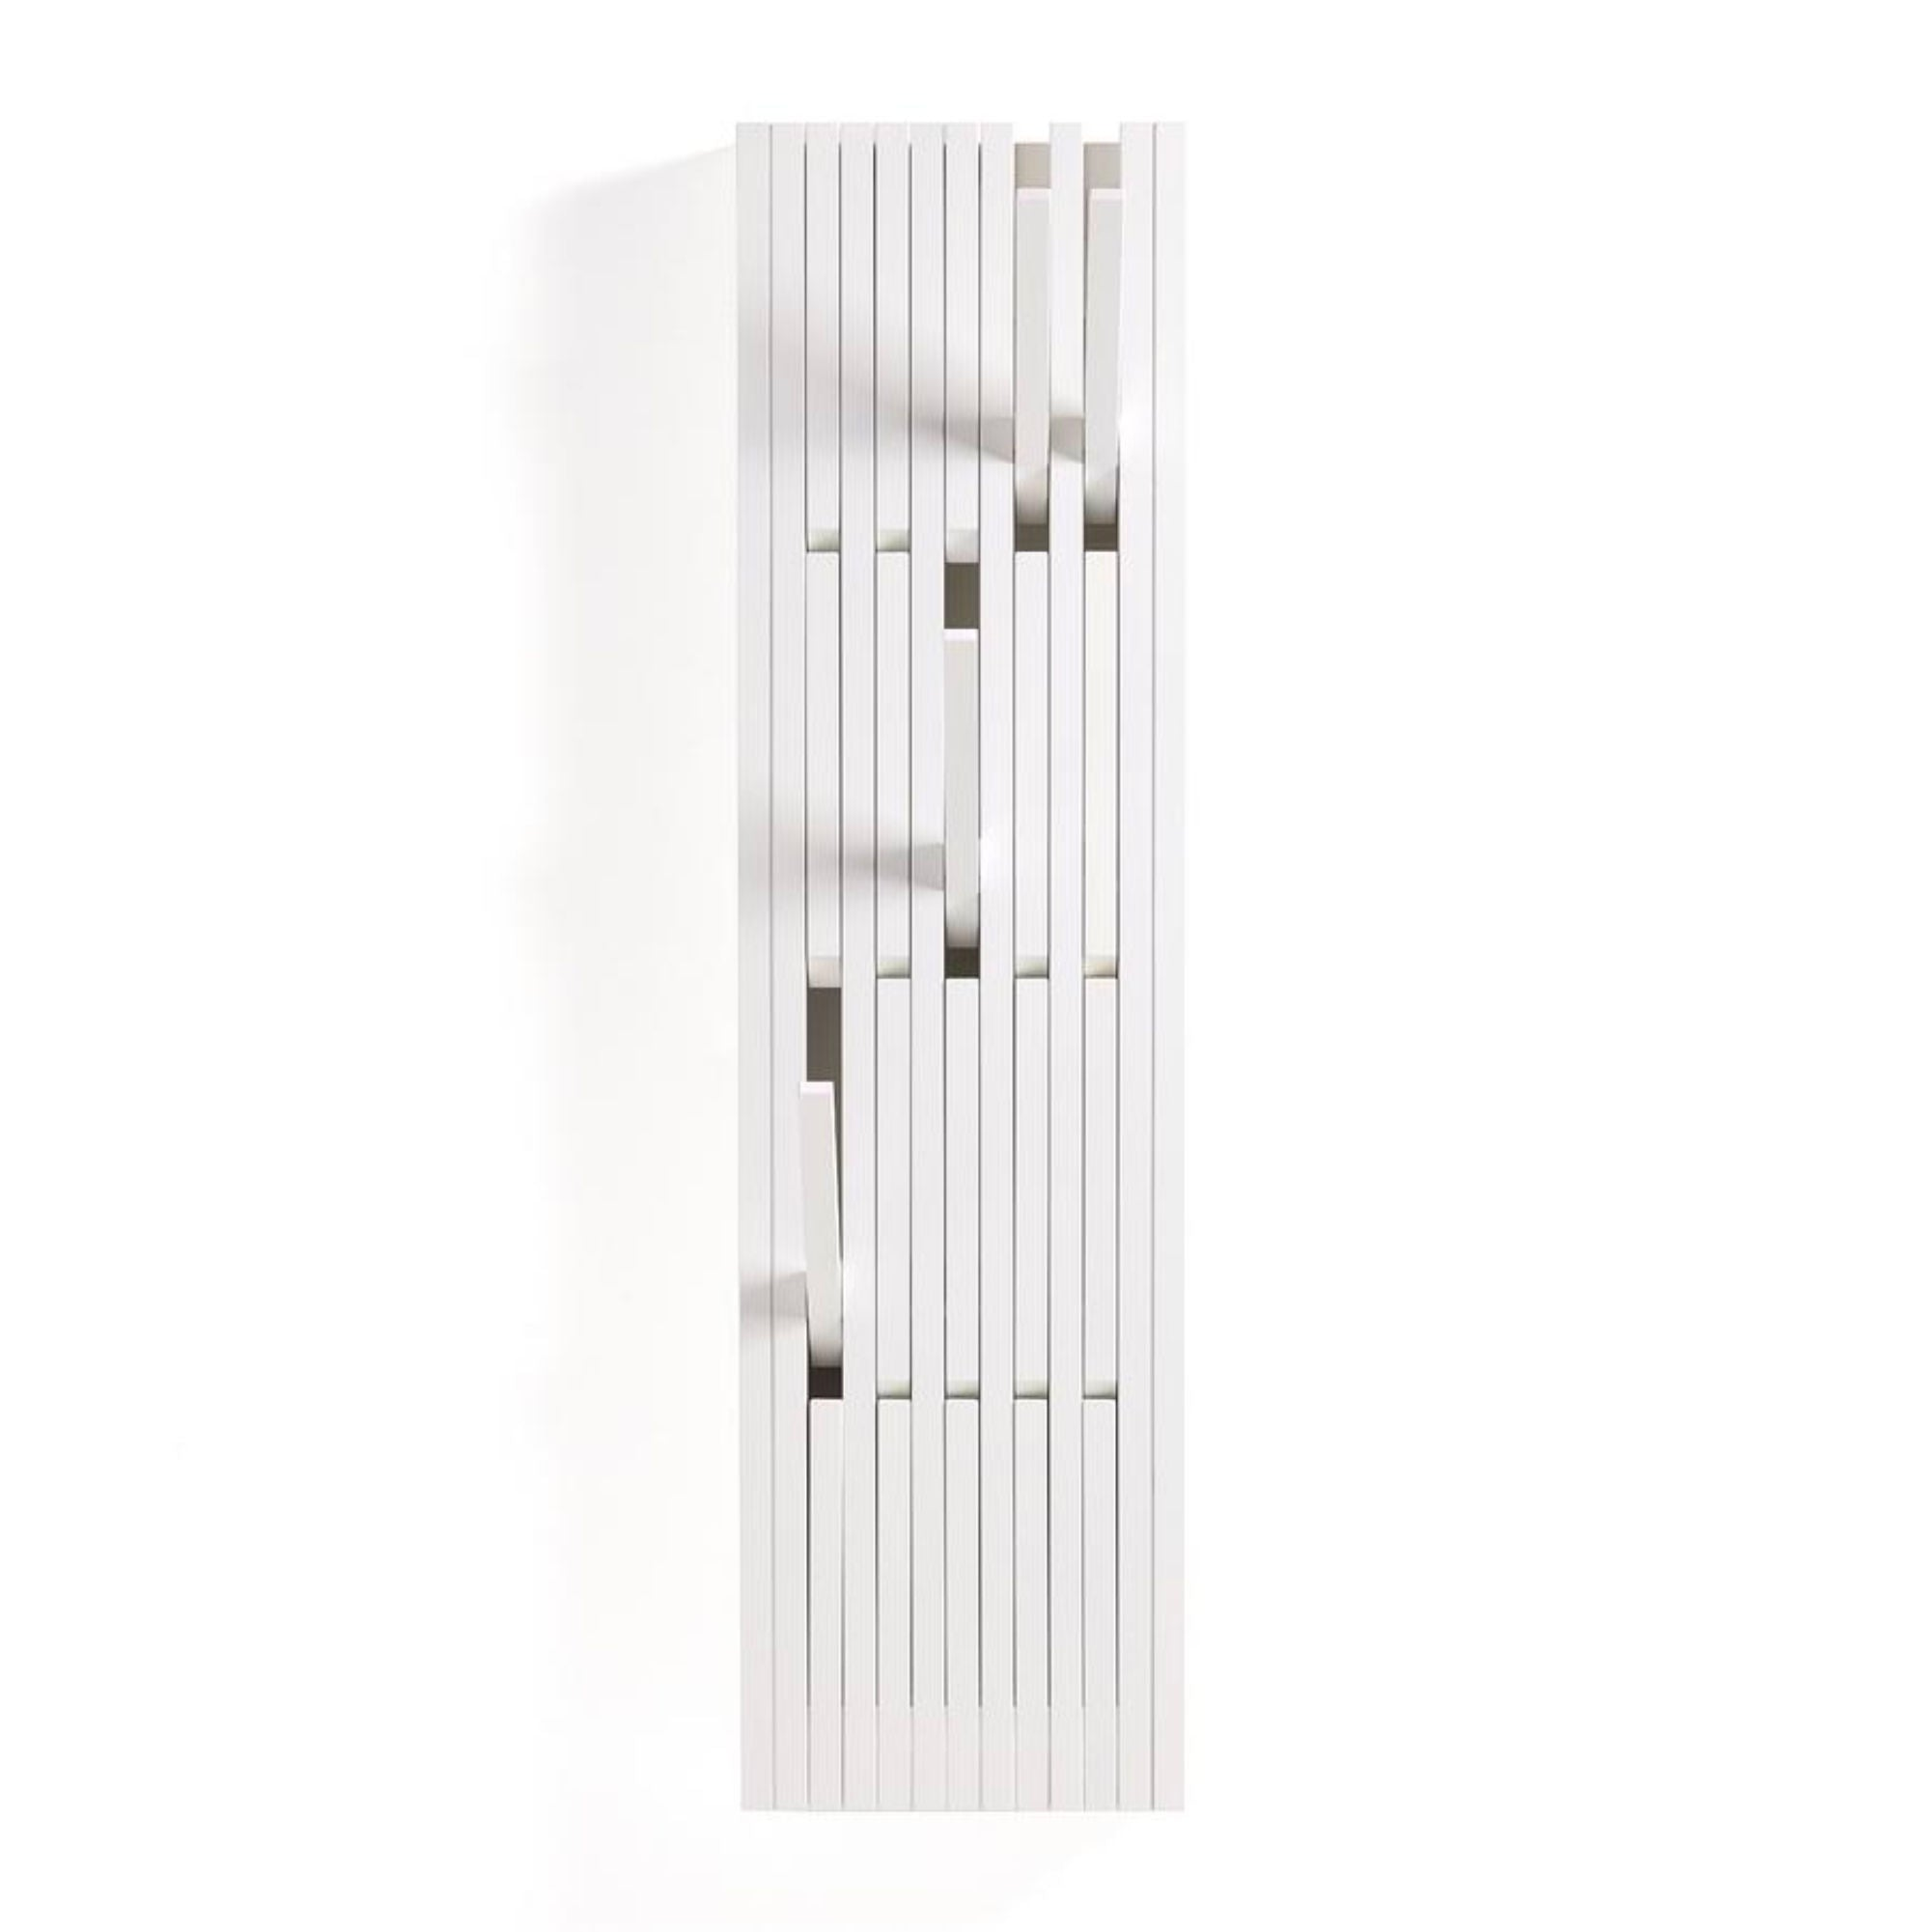 Peruse Piano hanger panel, Small - Beech lacquered white